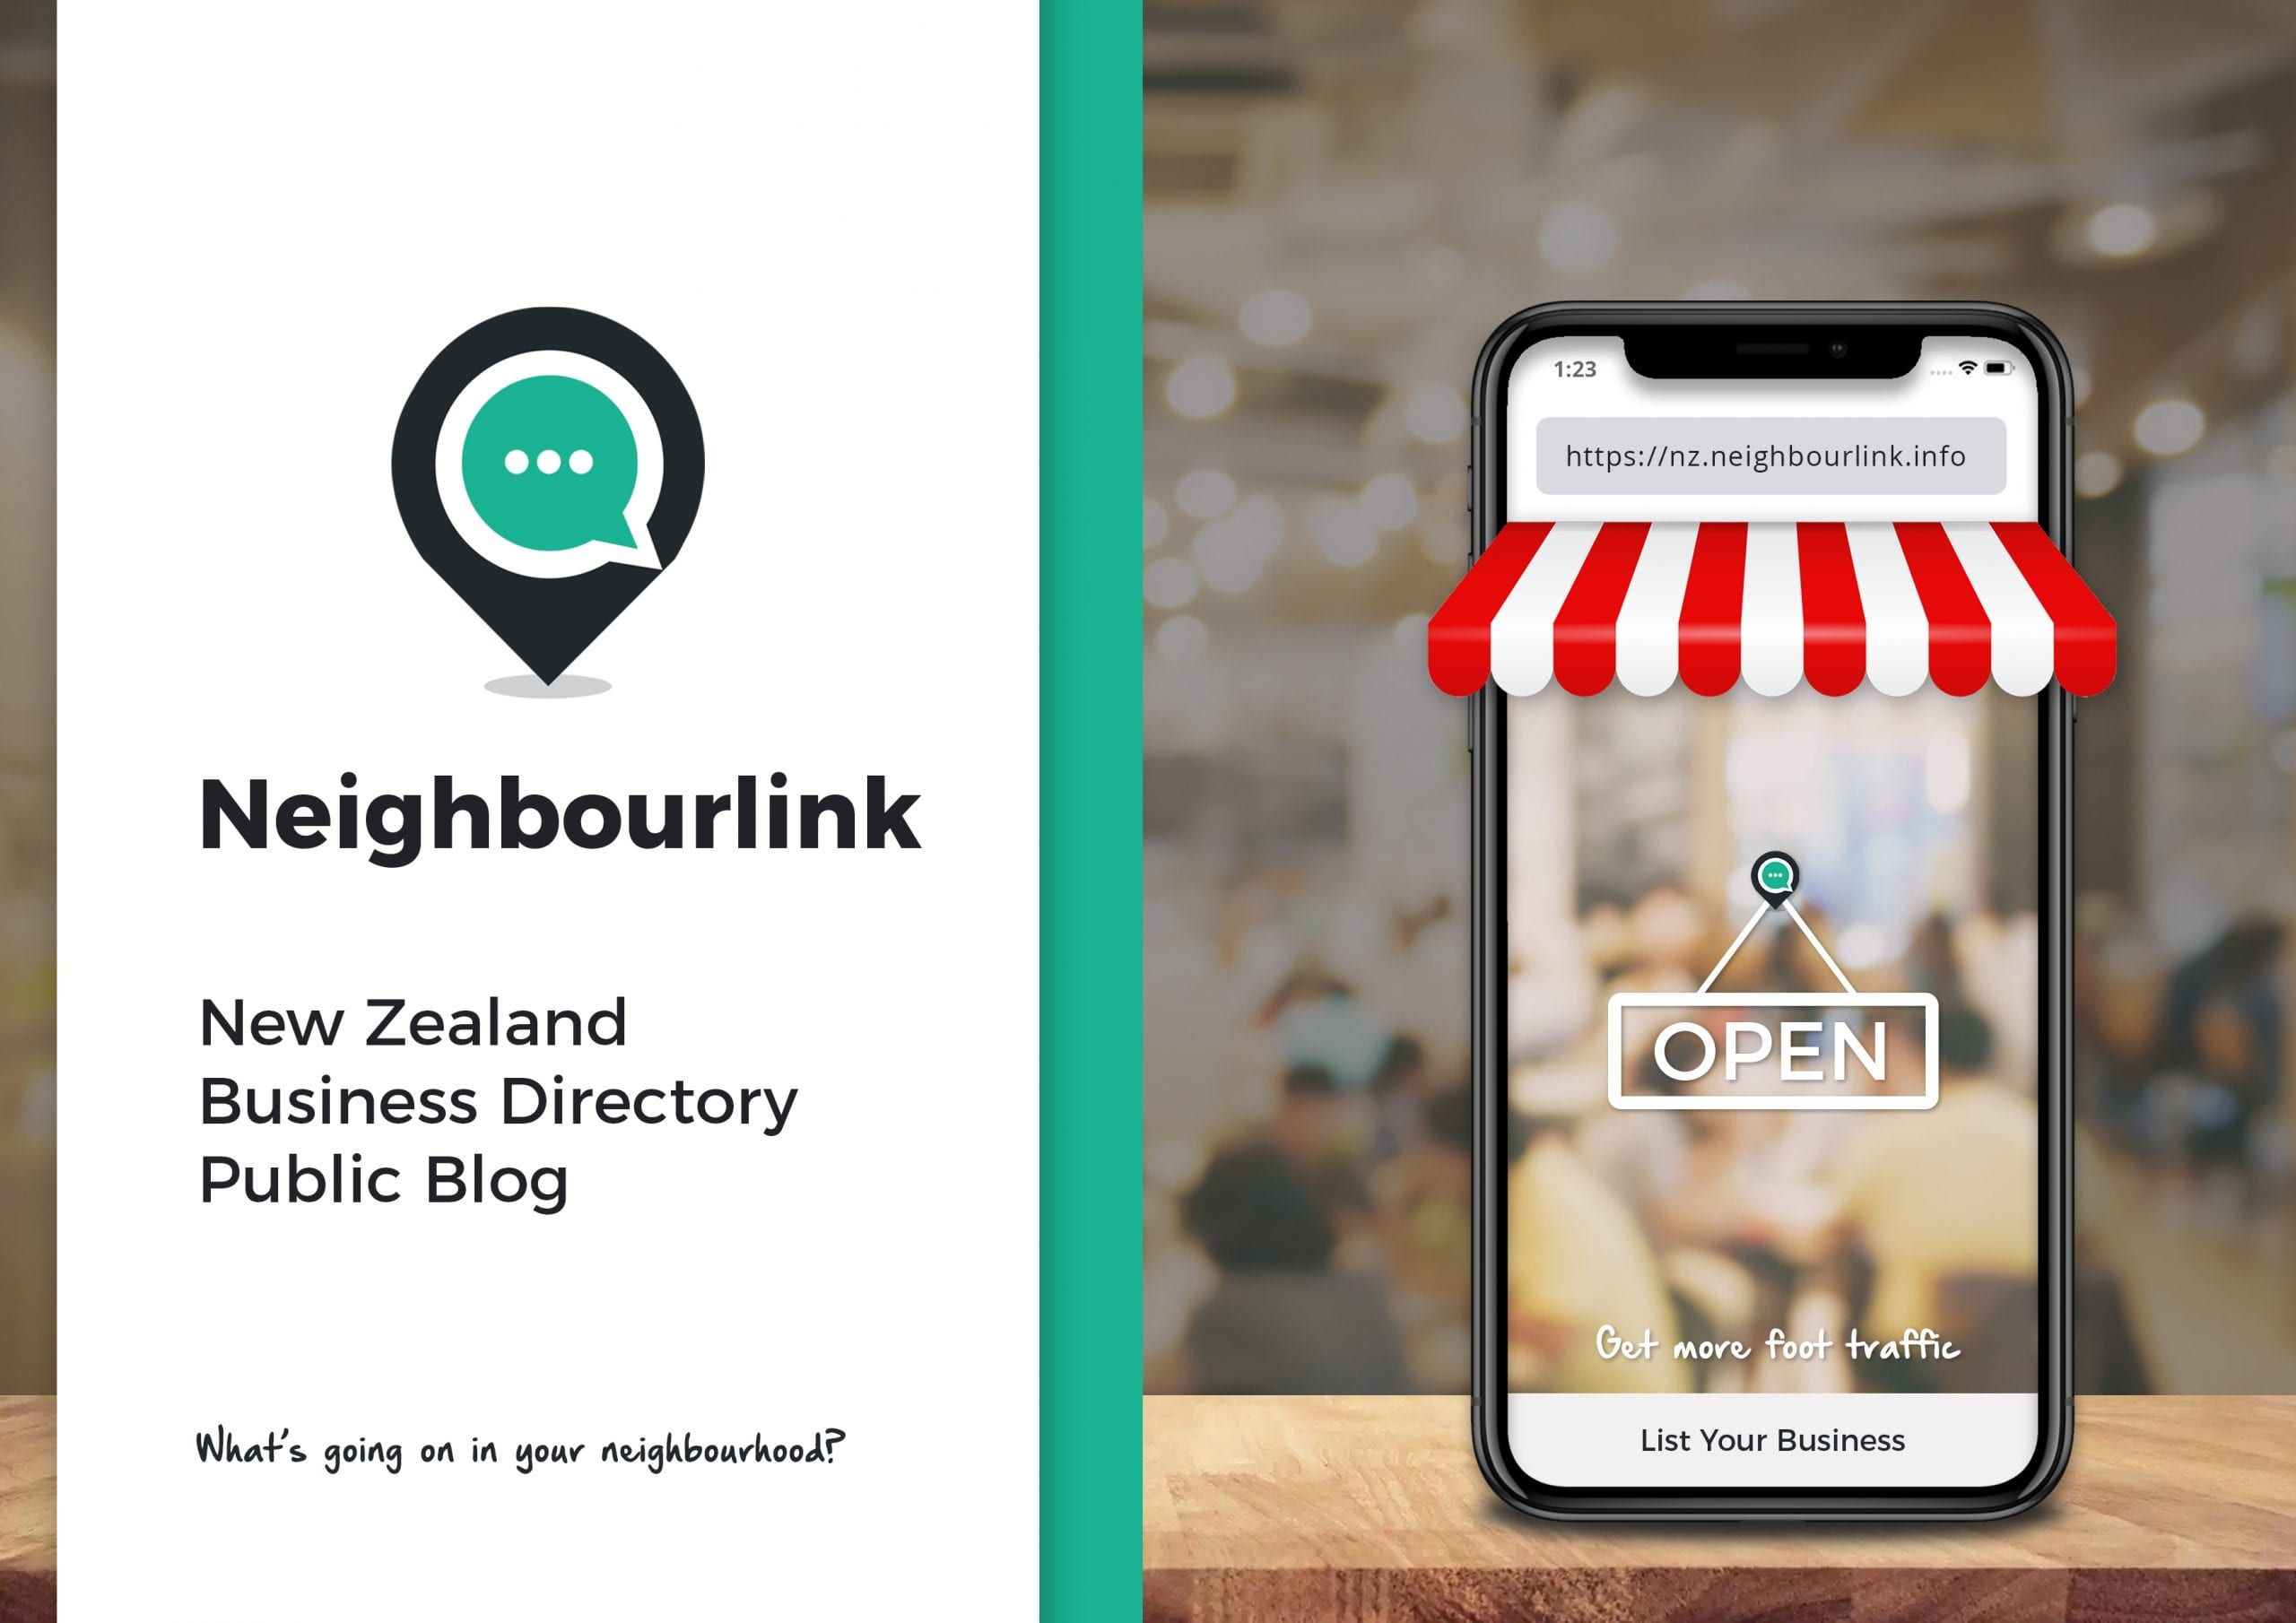 Neighbourlink-NZ-storefront-ad